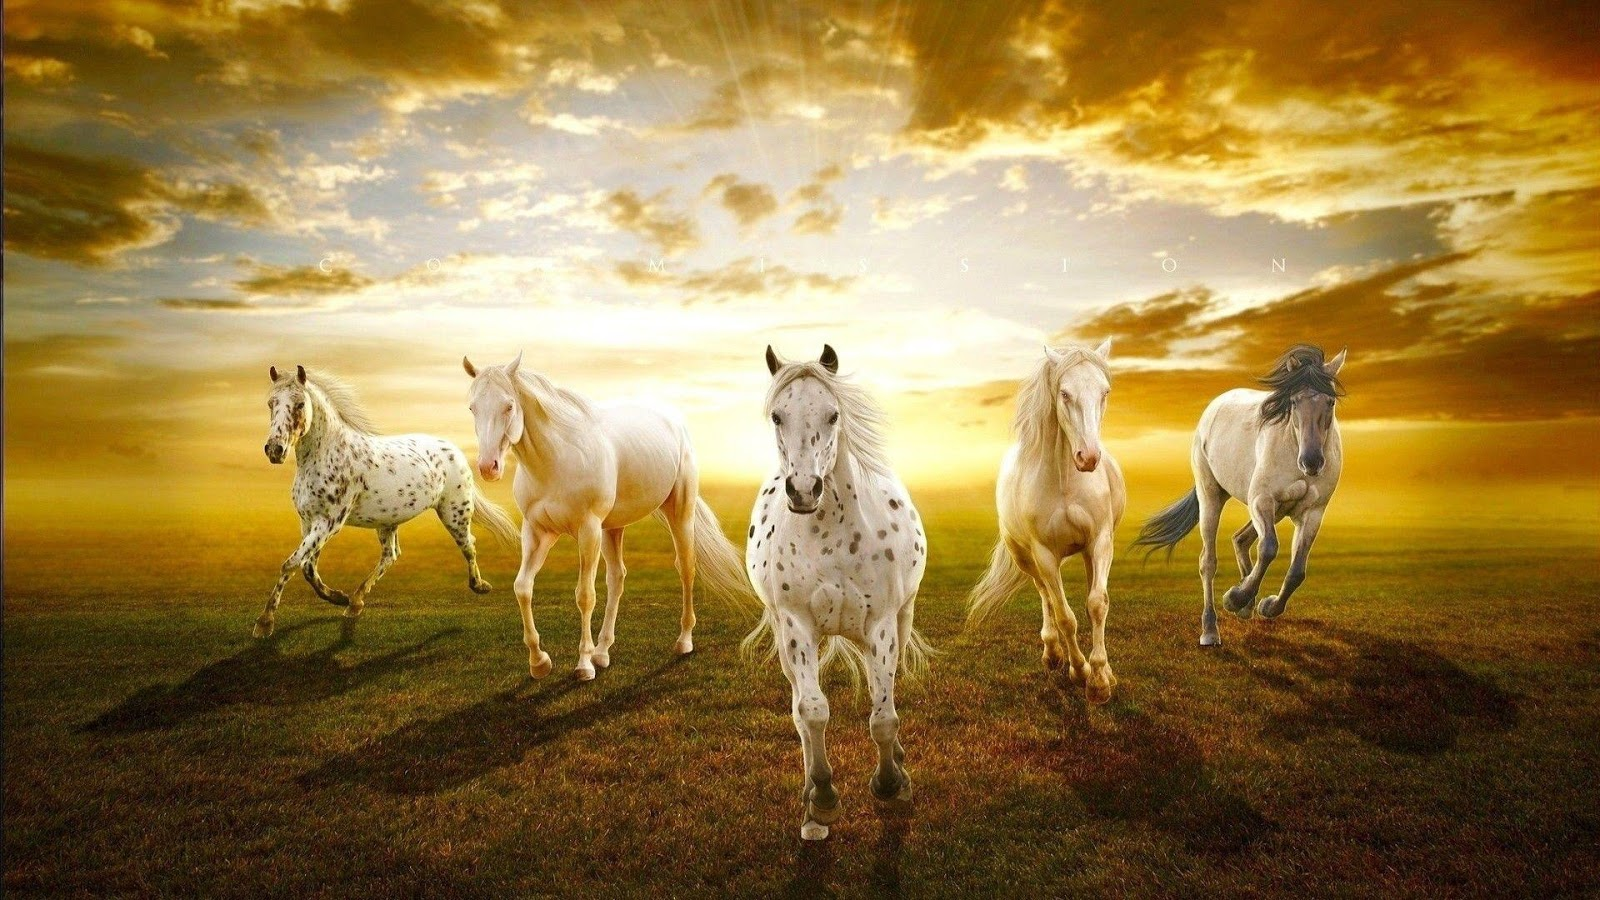 Seven Horses Wallpaper 7 - Android Apps on Google Play